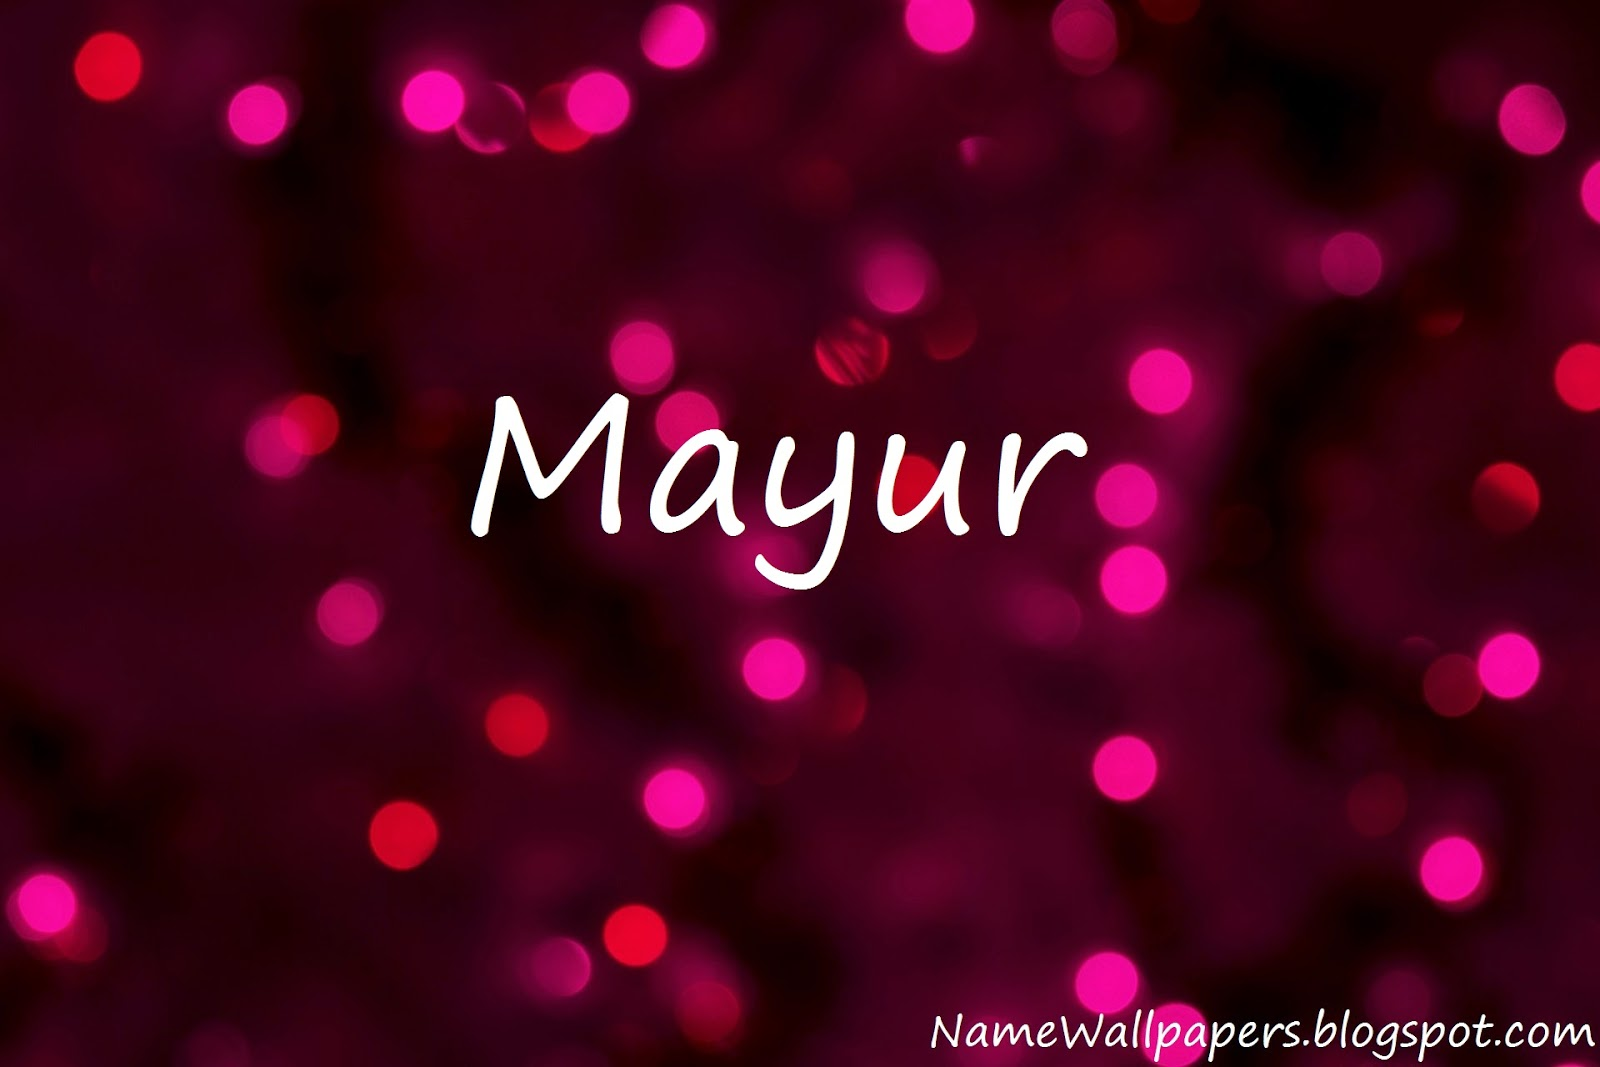 Name Wallpaper Mayur Name Wallpapers Mayur